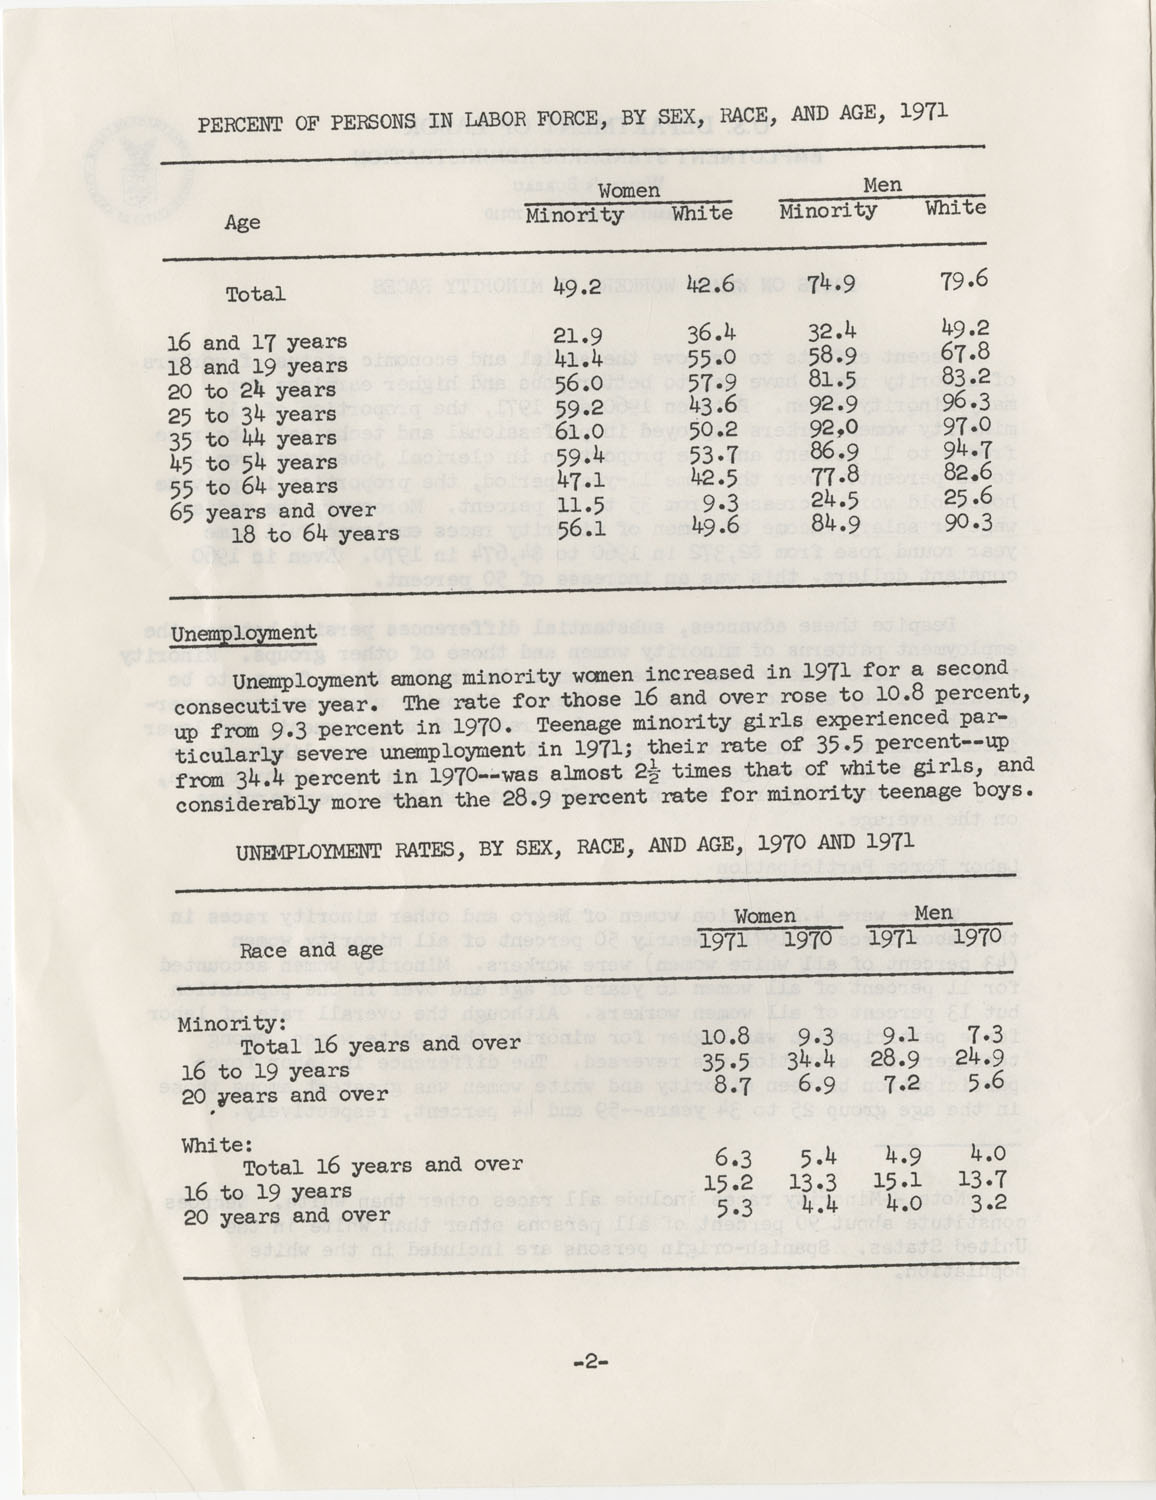 Facts on Women Workers of Minority Races, U.S. Department of Labor, June 1972, Page 2